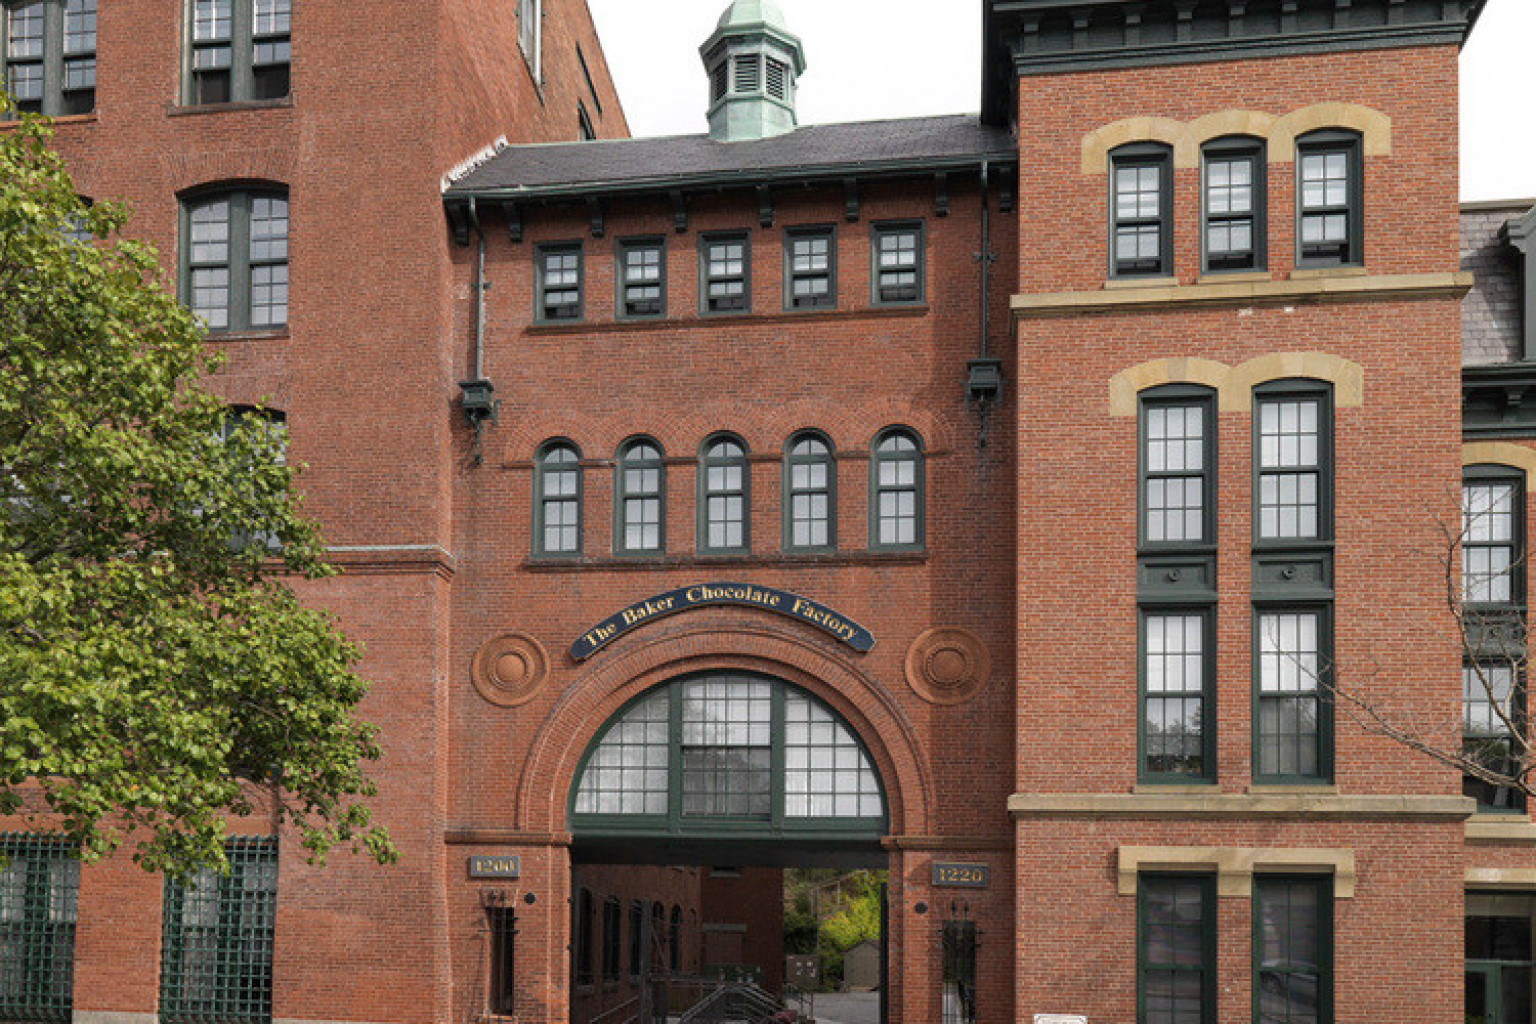 The Baker Chocolate Factory Once Produced Sweet Treats But